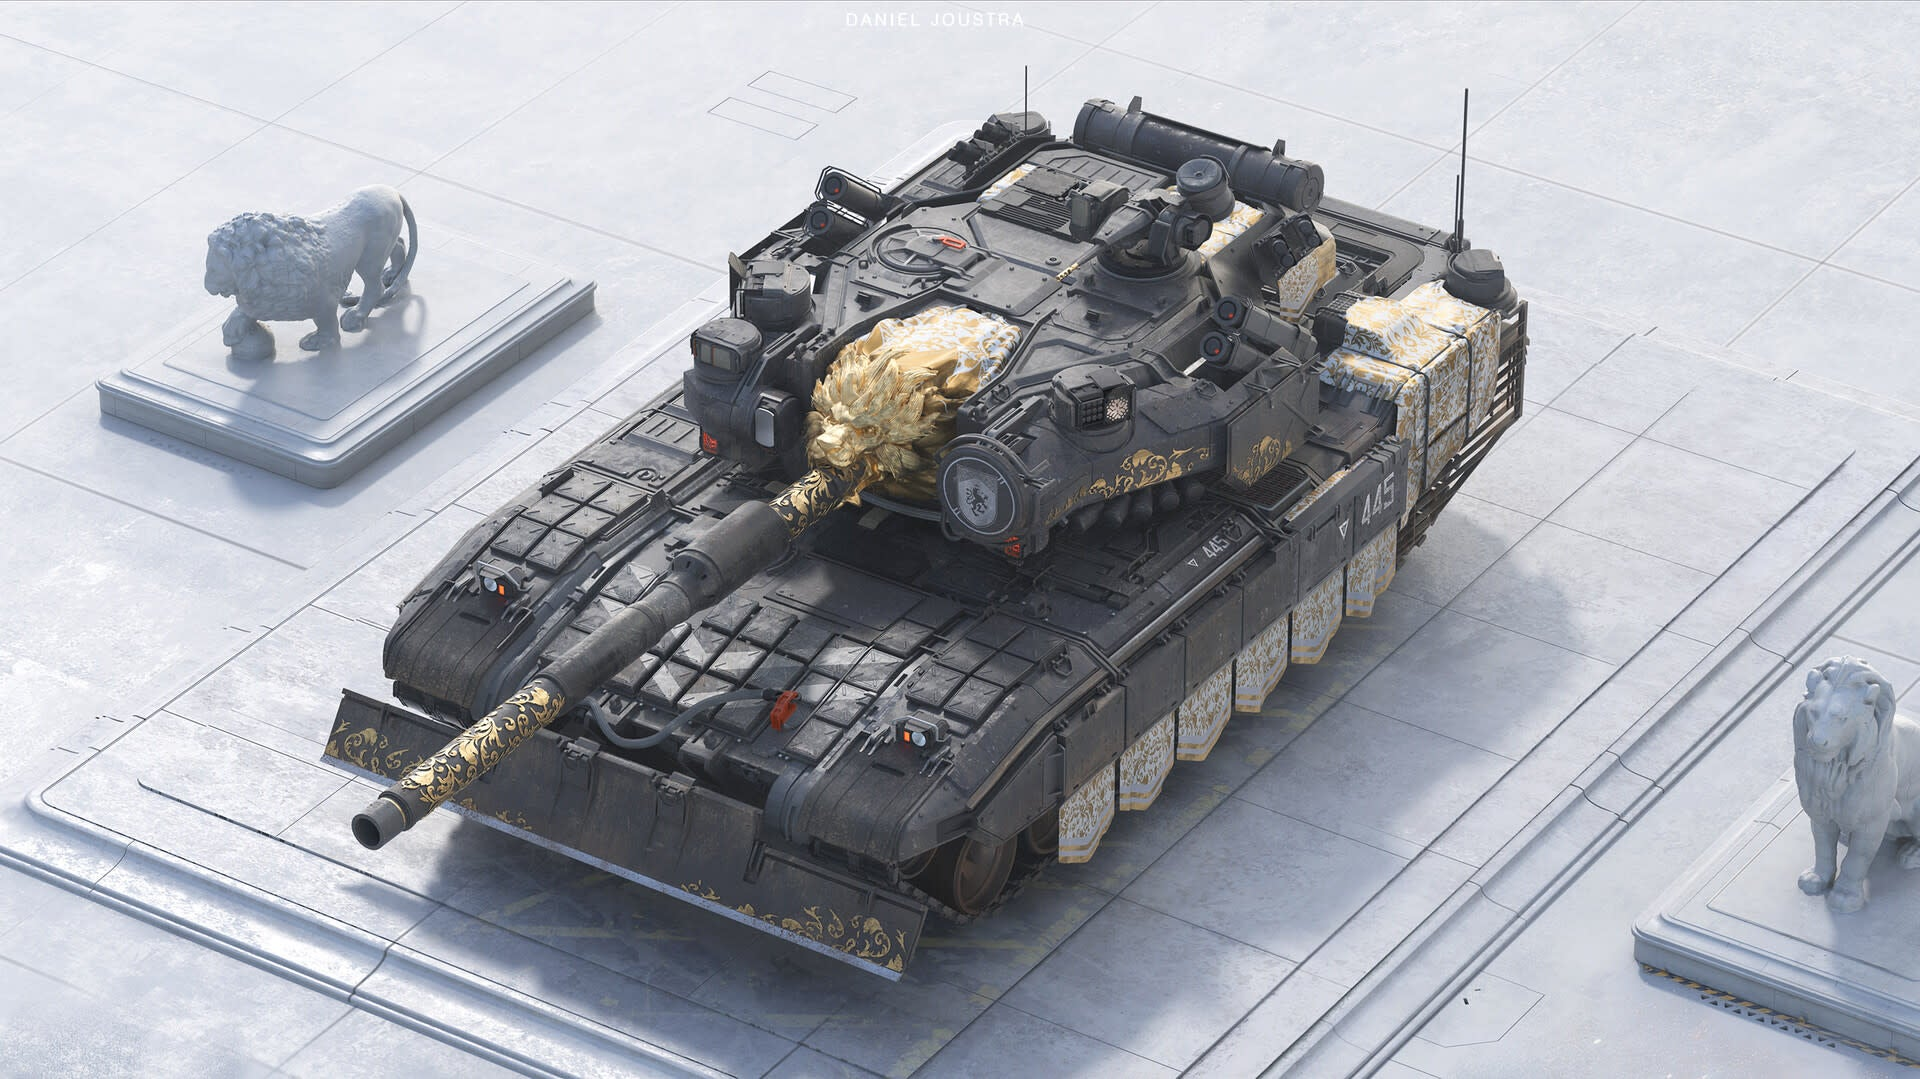 The Most Beautiful Tank In The World